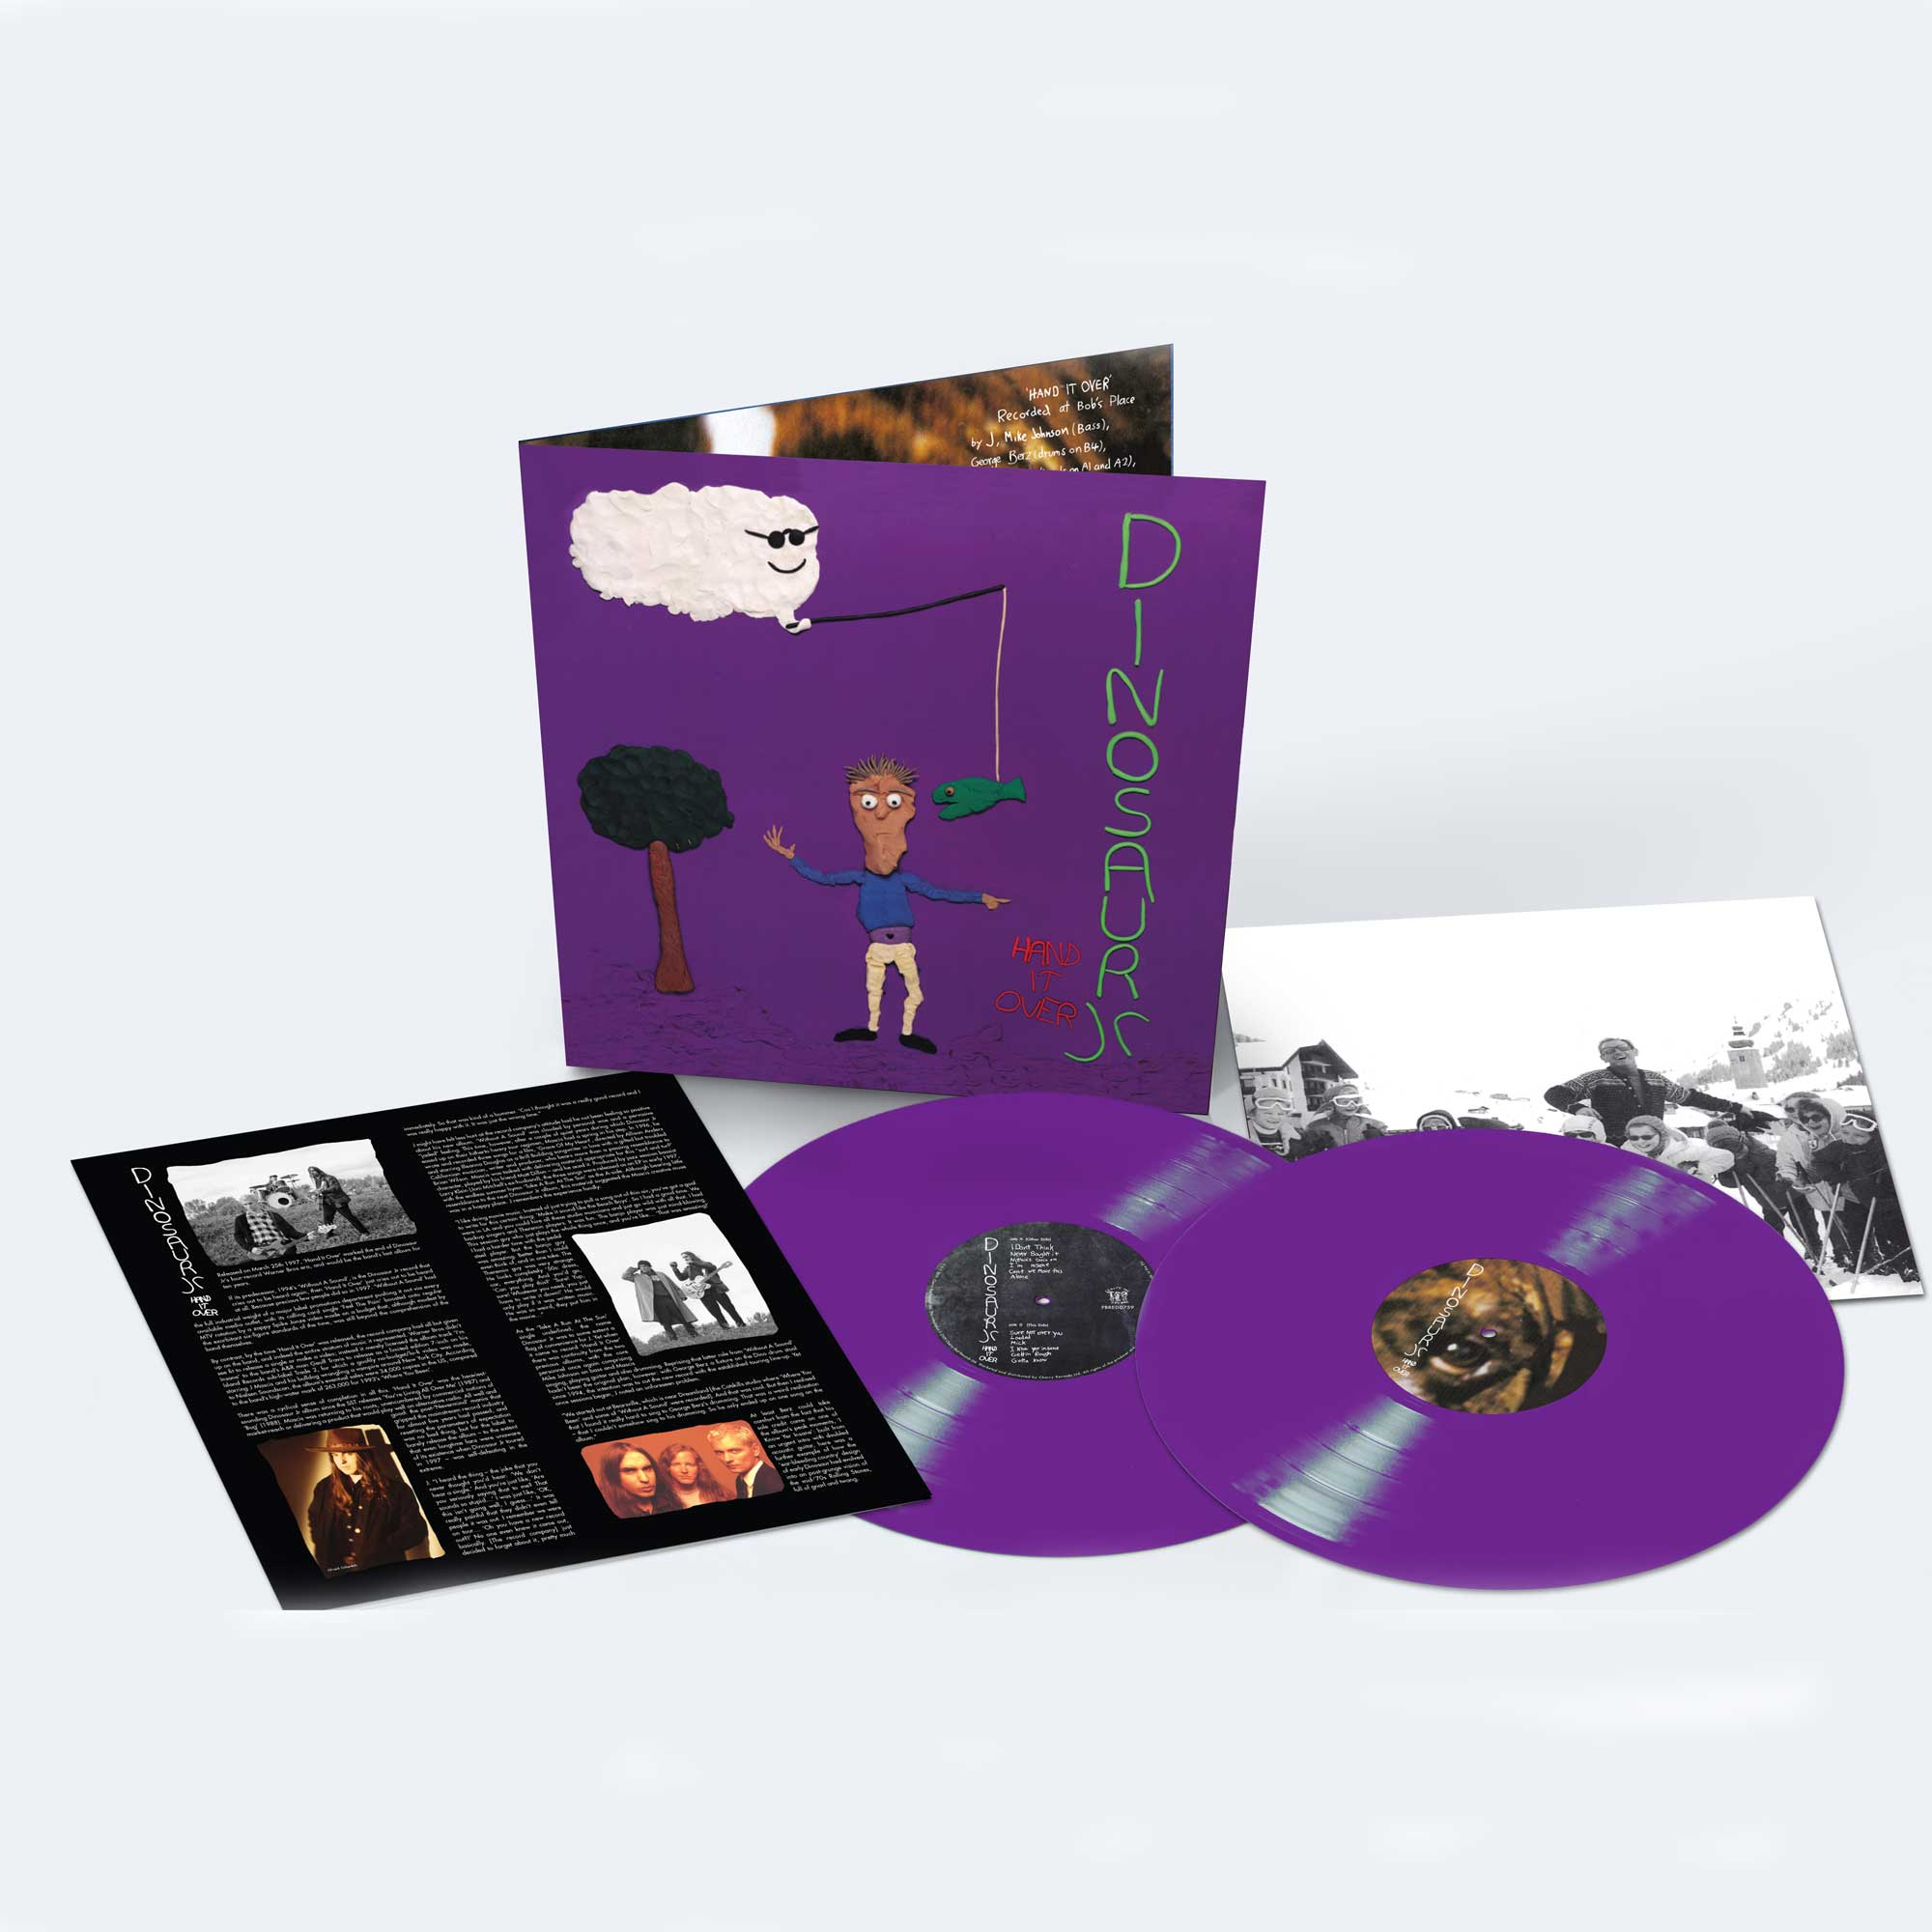 Hand It Over - Deluxe Expanded Edition, Double Gatefold Purple Vinyl LP